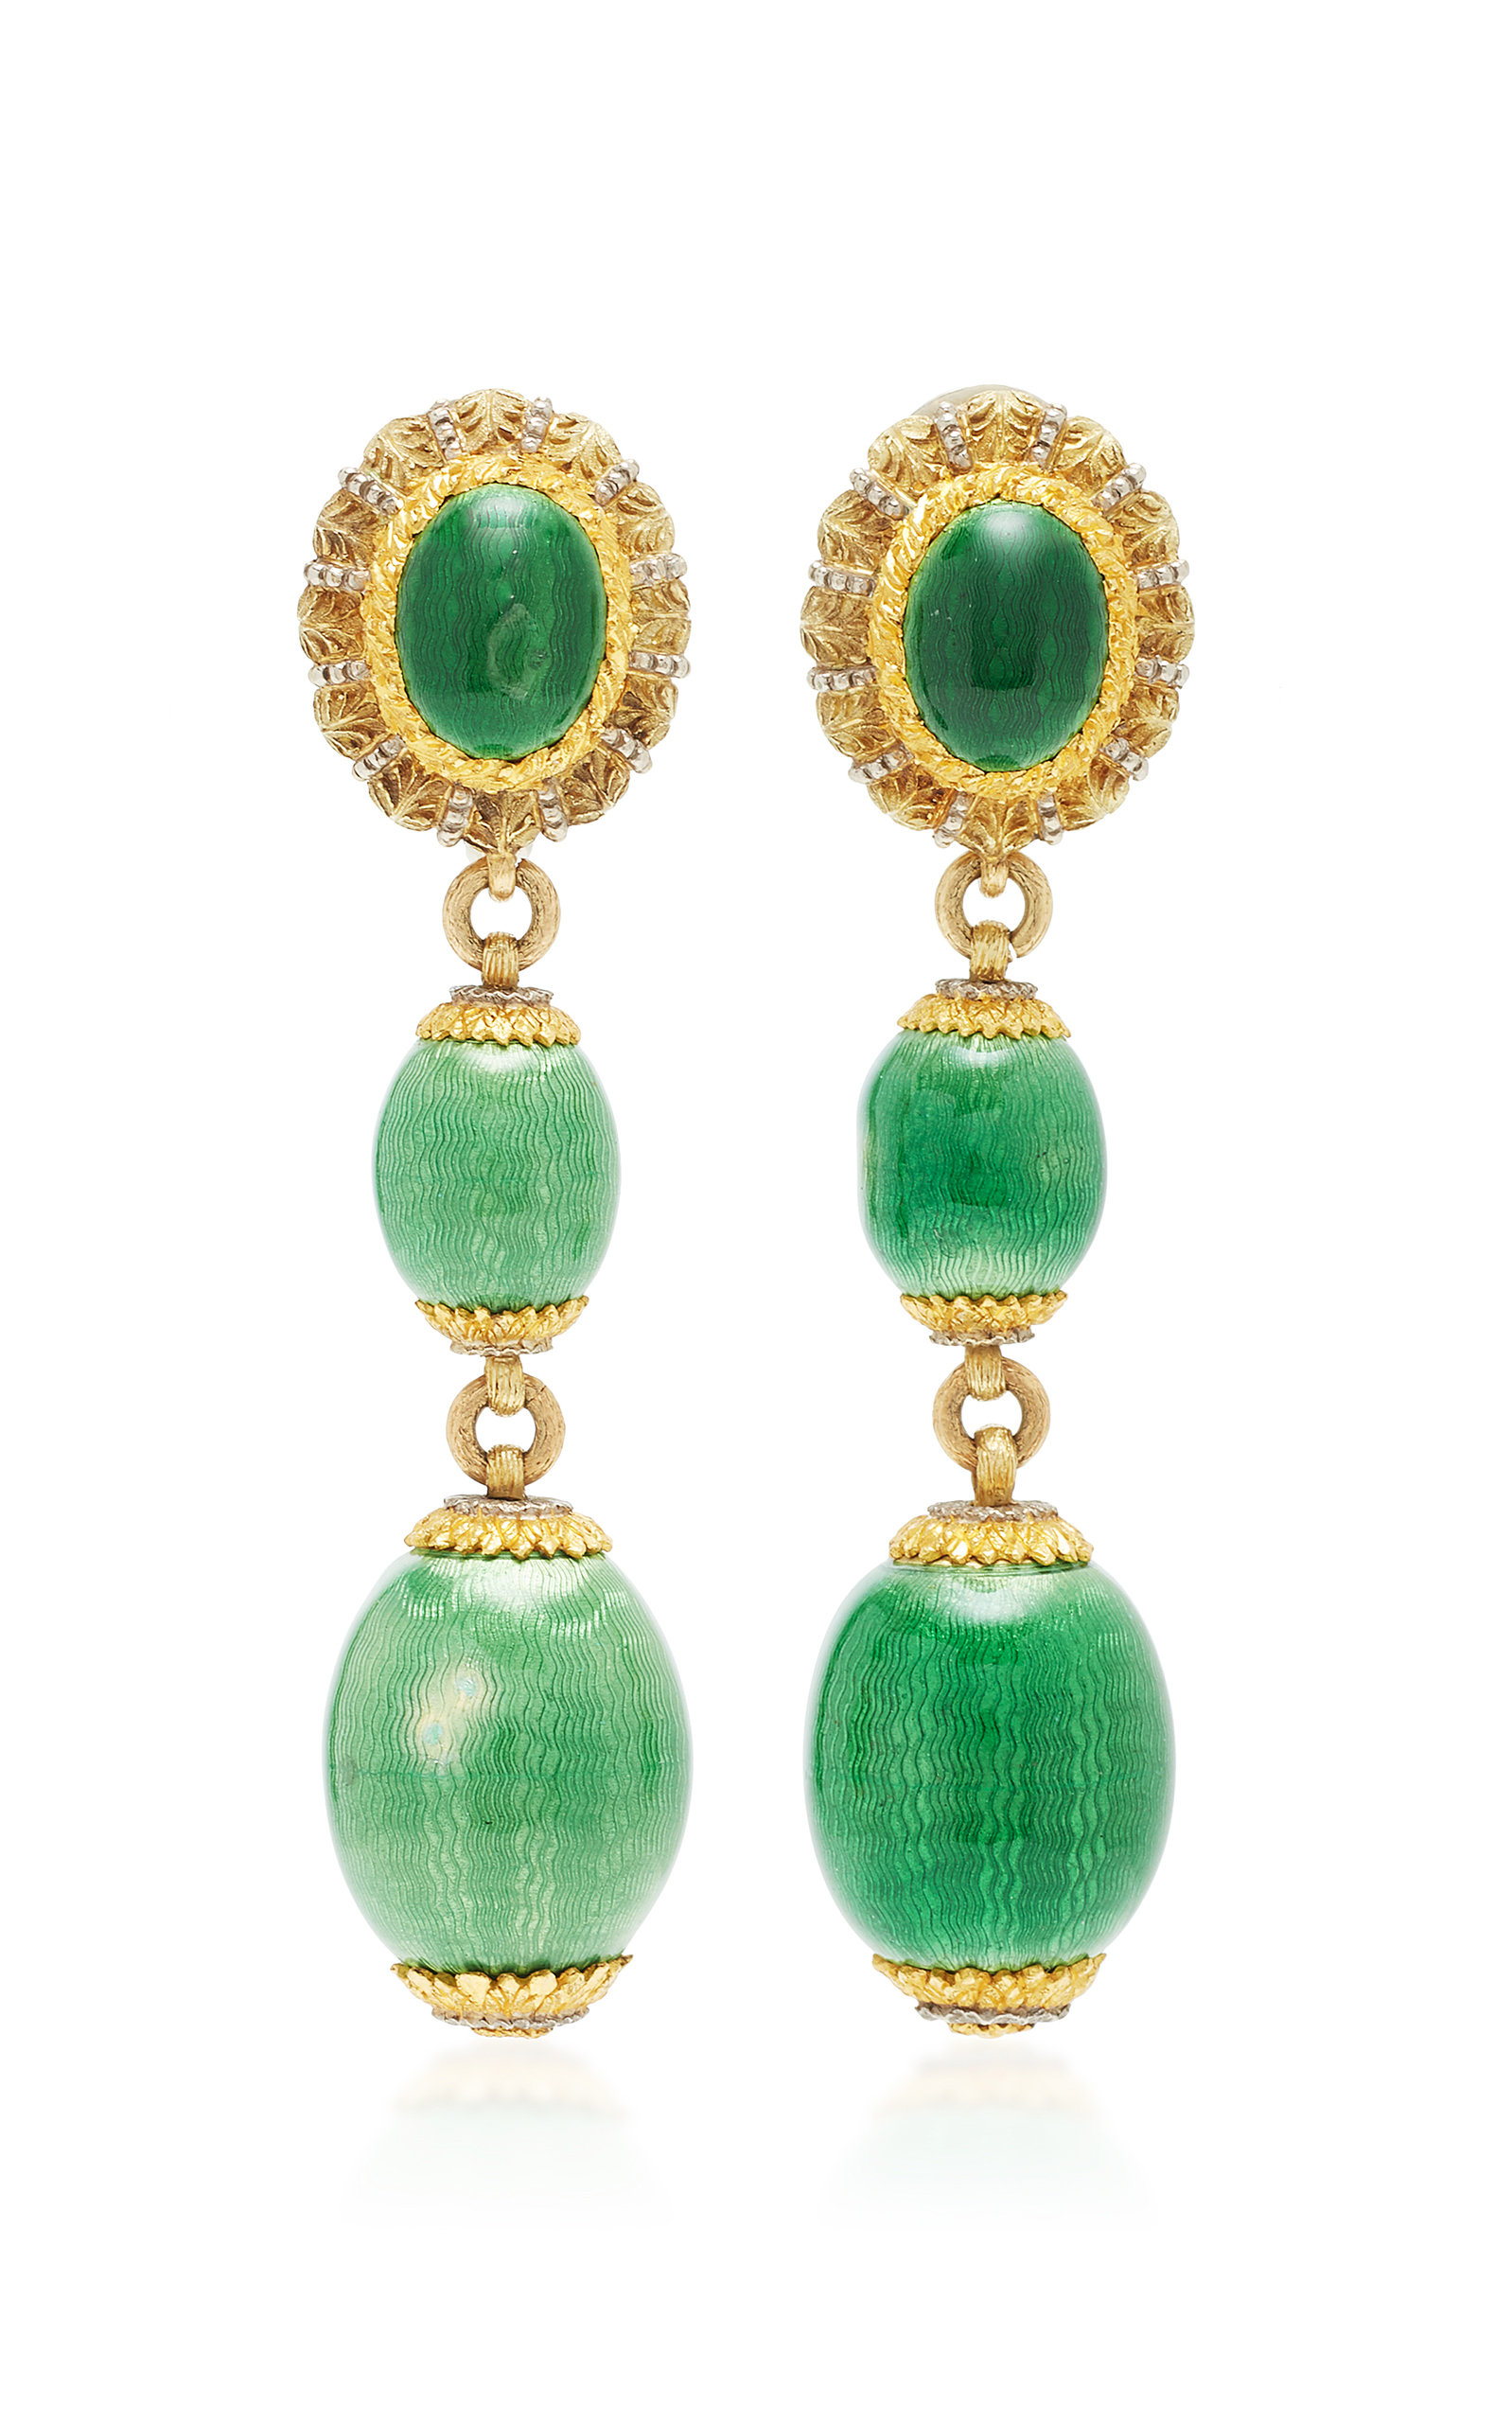 MAHNAZ COLLECTION ONE-OF-A-KIND 18K GOLD AND GREEN GUILLOCHÉ ENAMEL DROP EARRINGS BY CAZZANIGA C.1960